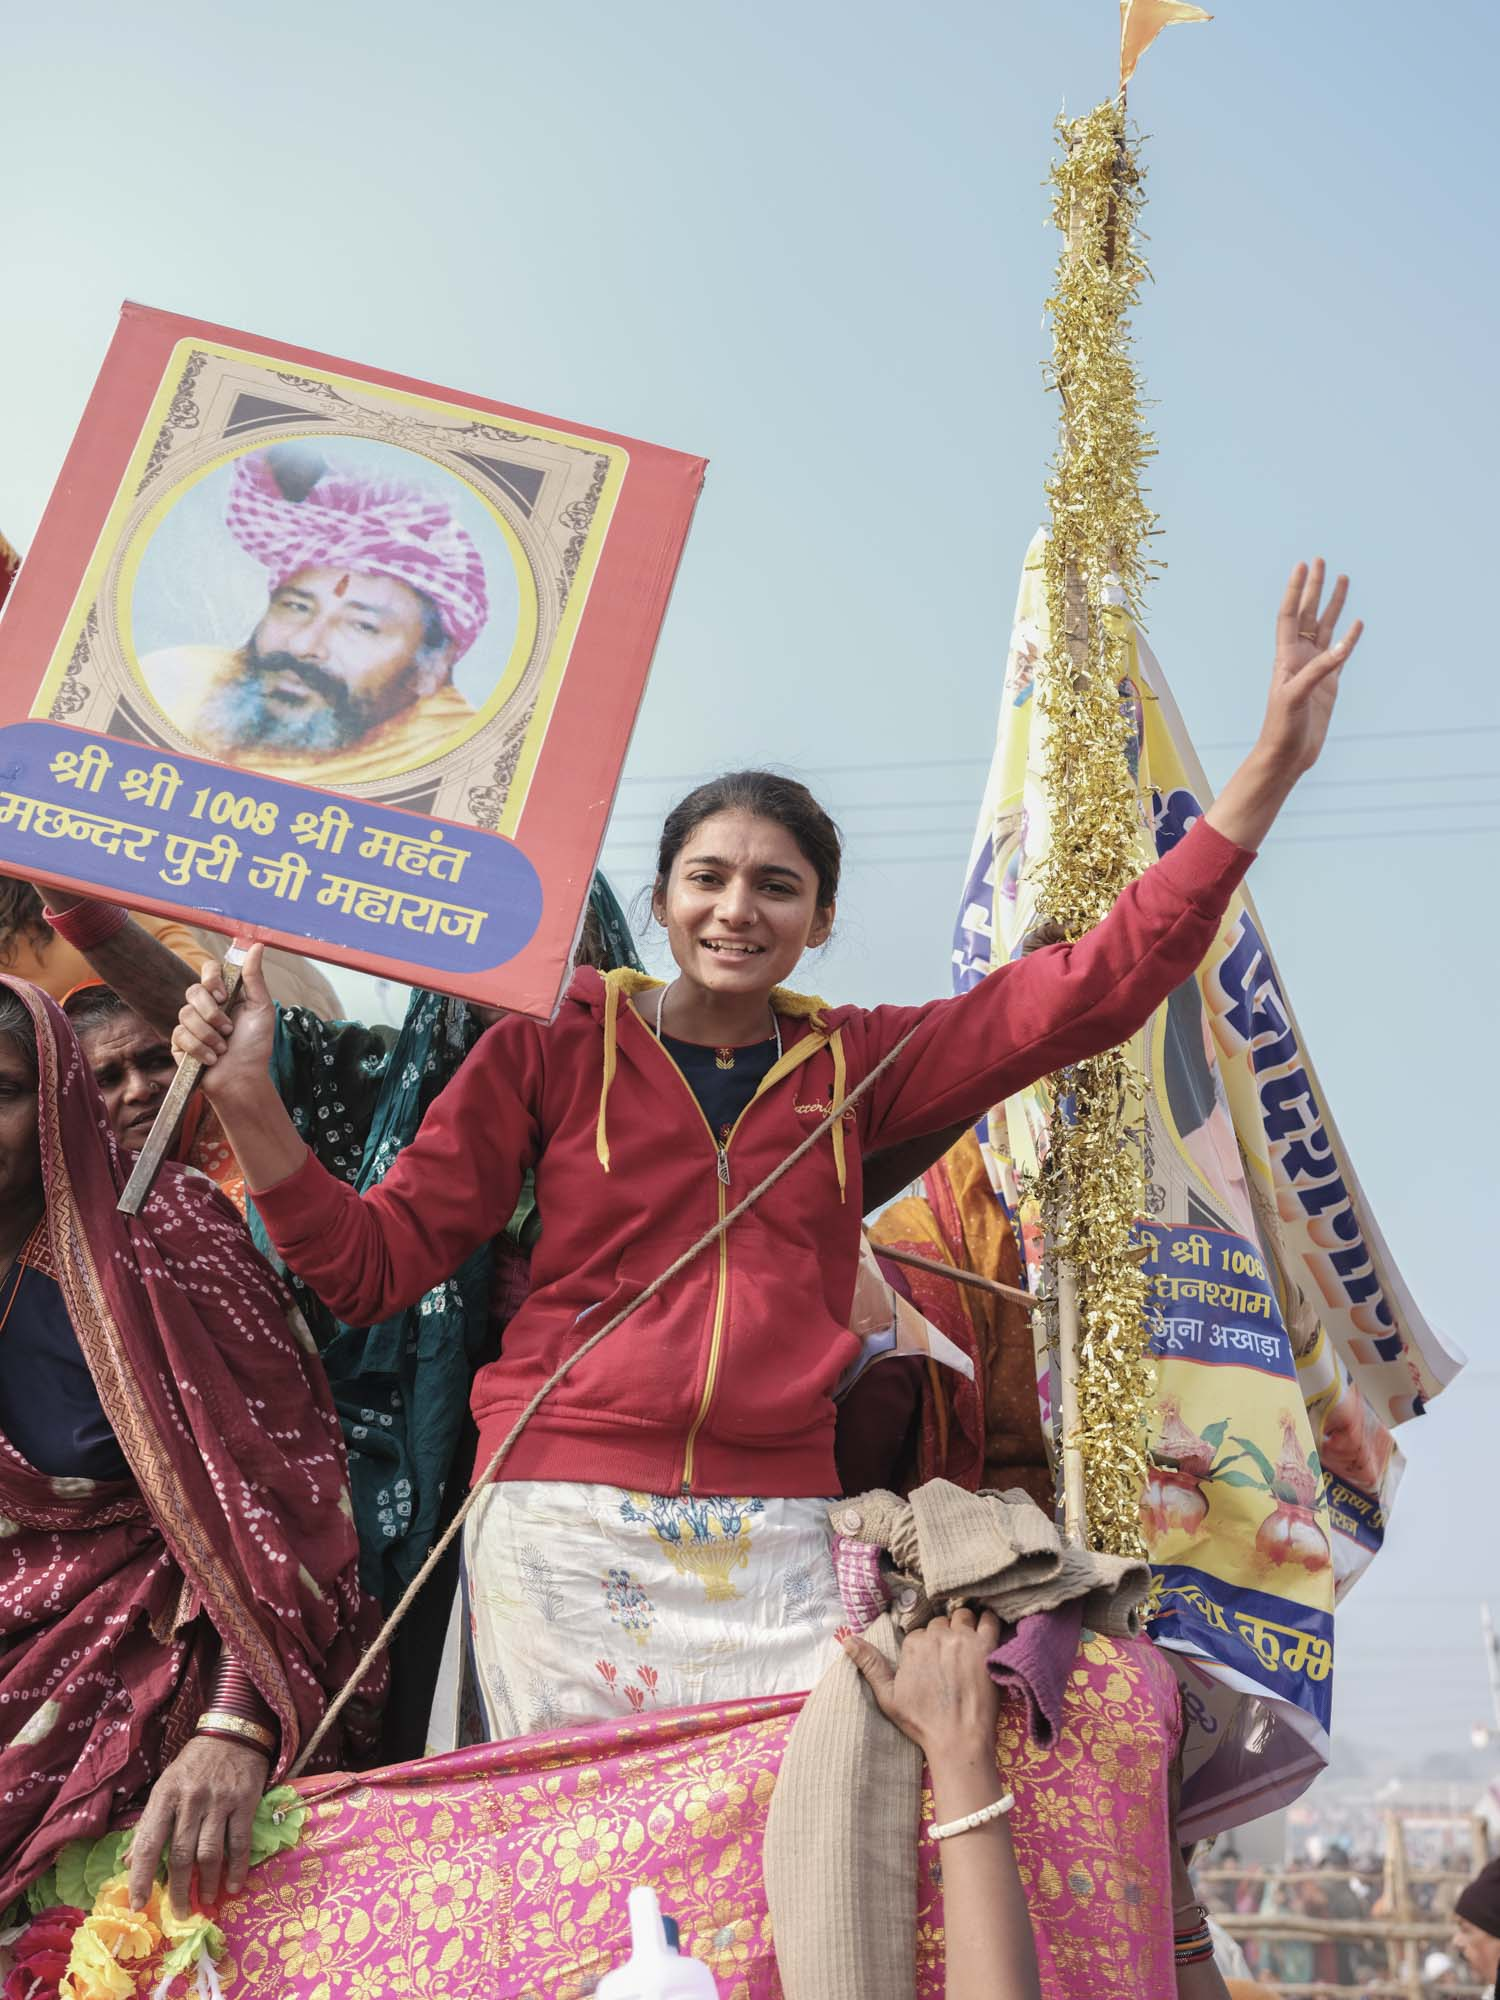 woman support baba crowd 4 February pilgrims Kumbh mela 2019 India Allahabad Prayagraj Ardh hindu religious Festival event rivers photographer jose jeuland photography